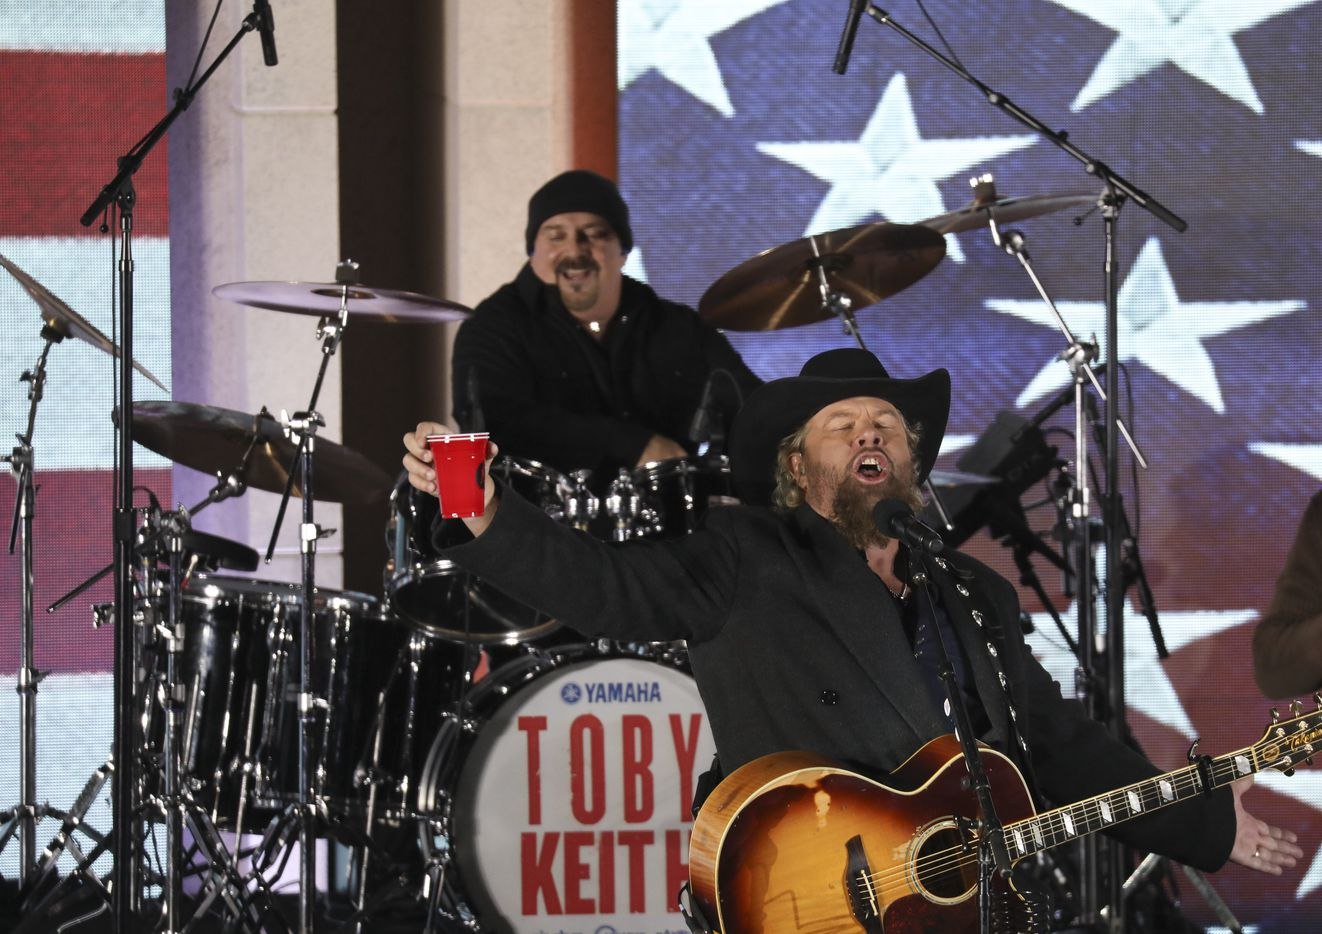 Toby Keith performs at the Lincoln Memorial during an inaugural concert and show on the eve of President-elect Donald Trump's inauguration in Washington, Jan. 19, 2017.